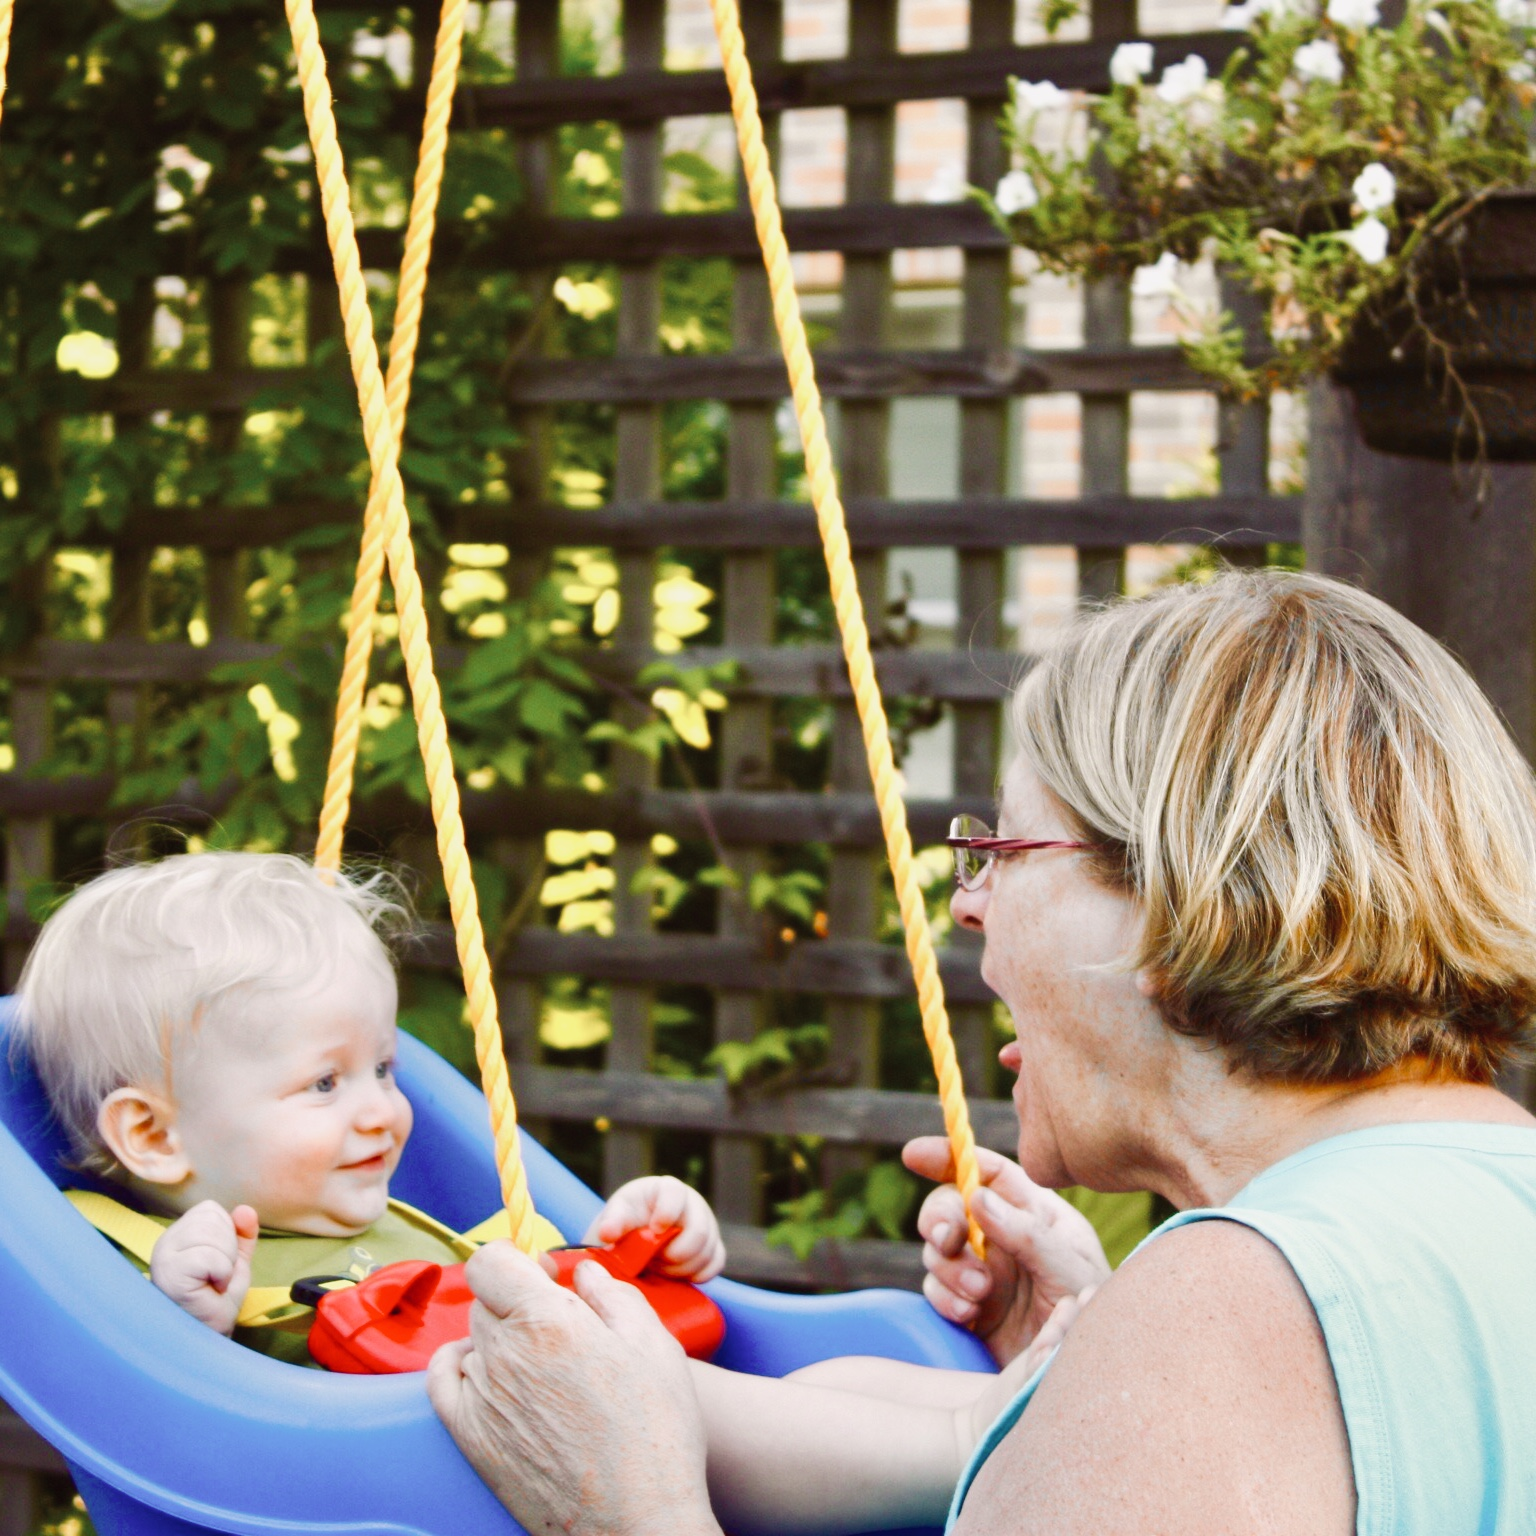 Meet Beth Osten, MS, OTR/L - Beth opened Beth Osten & Associates in 1992, and has more than 40 years of pediatric experience as an occupational therapist. Beth speaks nationally and internationally on the DIR/Floortime model for treatment of autism spectrum disorders and has over 15 years of experience training professionals in the DIR/Floortime® model through ICDL and Profectum.Beth teaches child development and pediatric occupational therapy practices related to early intervention, autism, infant motor development, and sensory integration. Additionally, she is a co-author of the Test of Infant Motor Development (TIMP), a diagnostic motor evaluation for premature and young infants, and is a co-author of a continuing education DVD released through ASHA.She is currently completing her PhD in Infancy and Early Childhood Development at Fielding University.